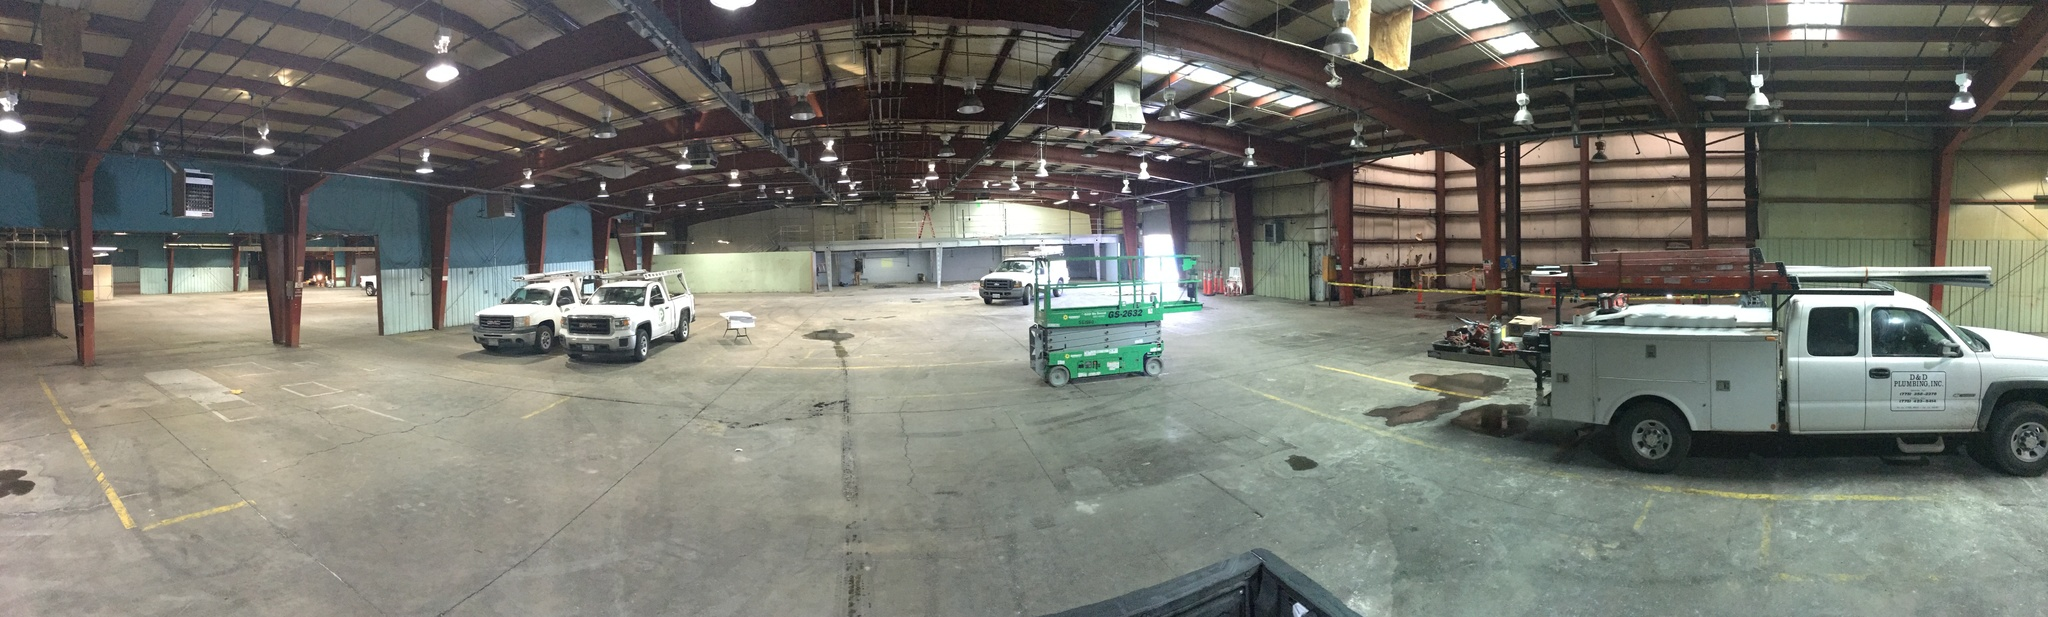 Miles Construction repurposes old Verdi warehouse into new cannabis facility (Photo courtesy: RAD Strategies)